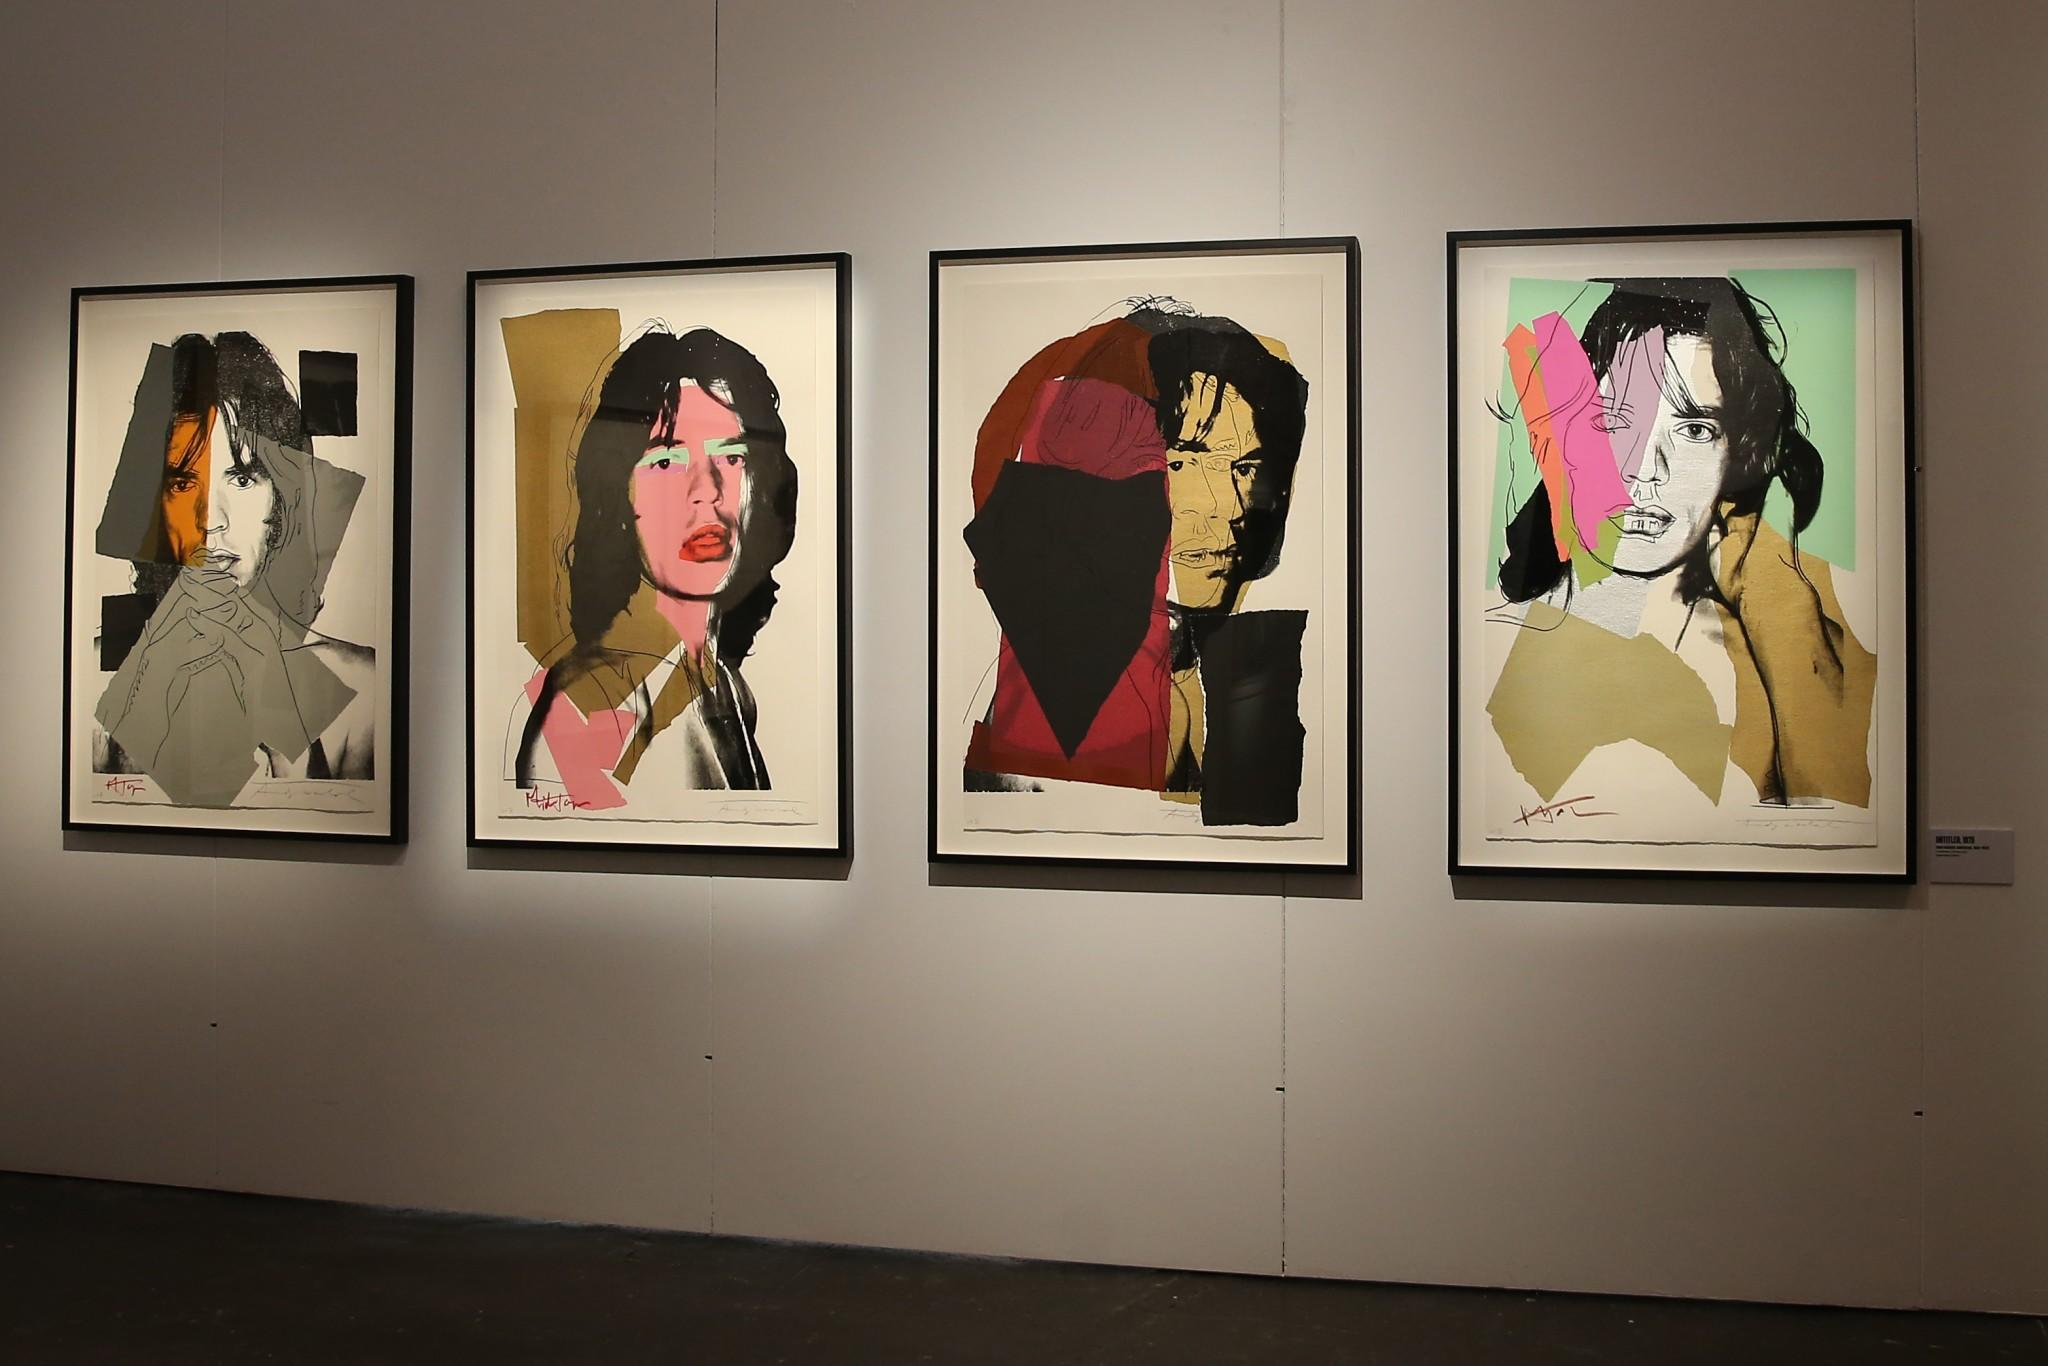 The original pieces of work from key collaborators who helped to make the band not just musical but cultural icons are also on show, include Andy Warhol lithographs of Mick Jagger. (Gordon Donovan/Yahoo News)